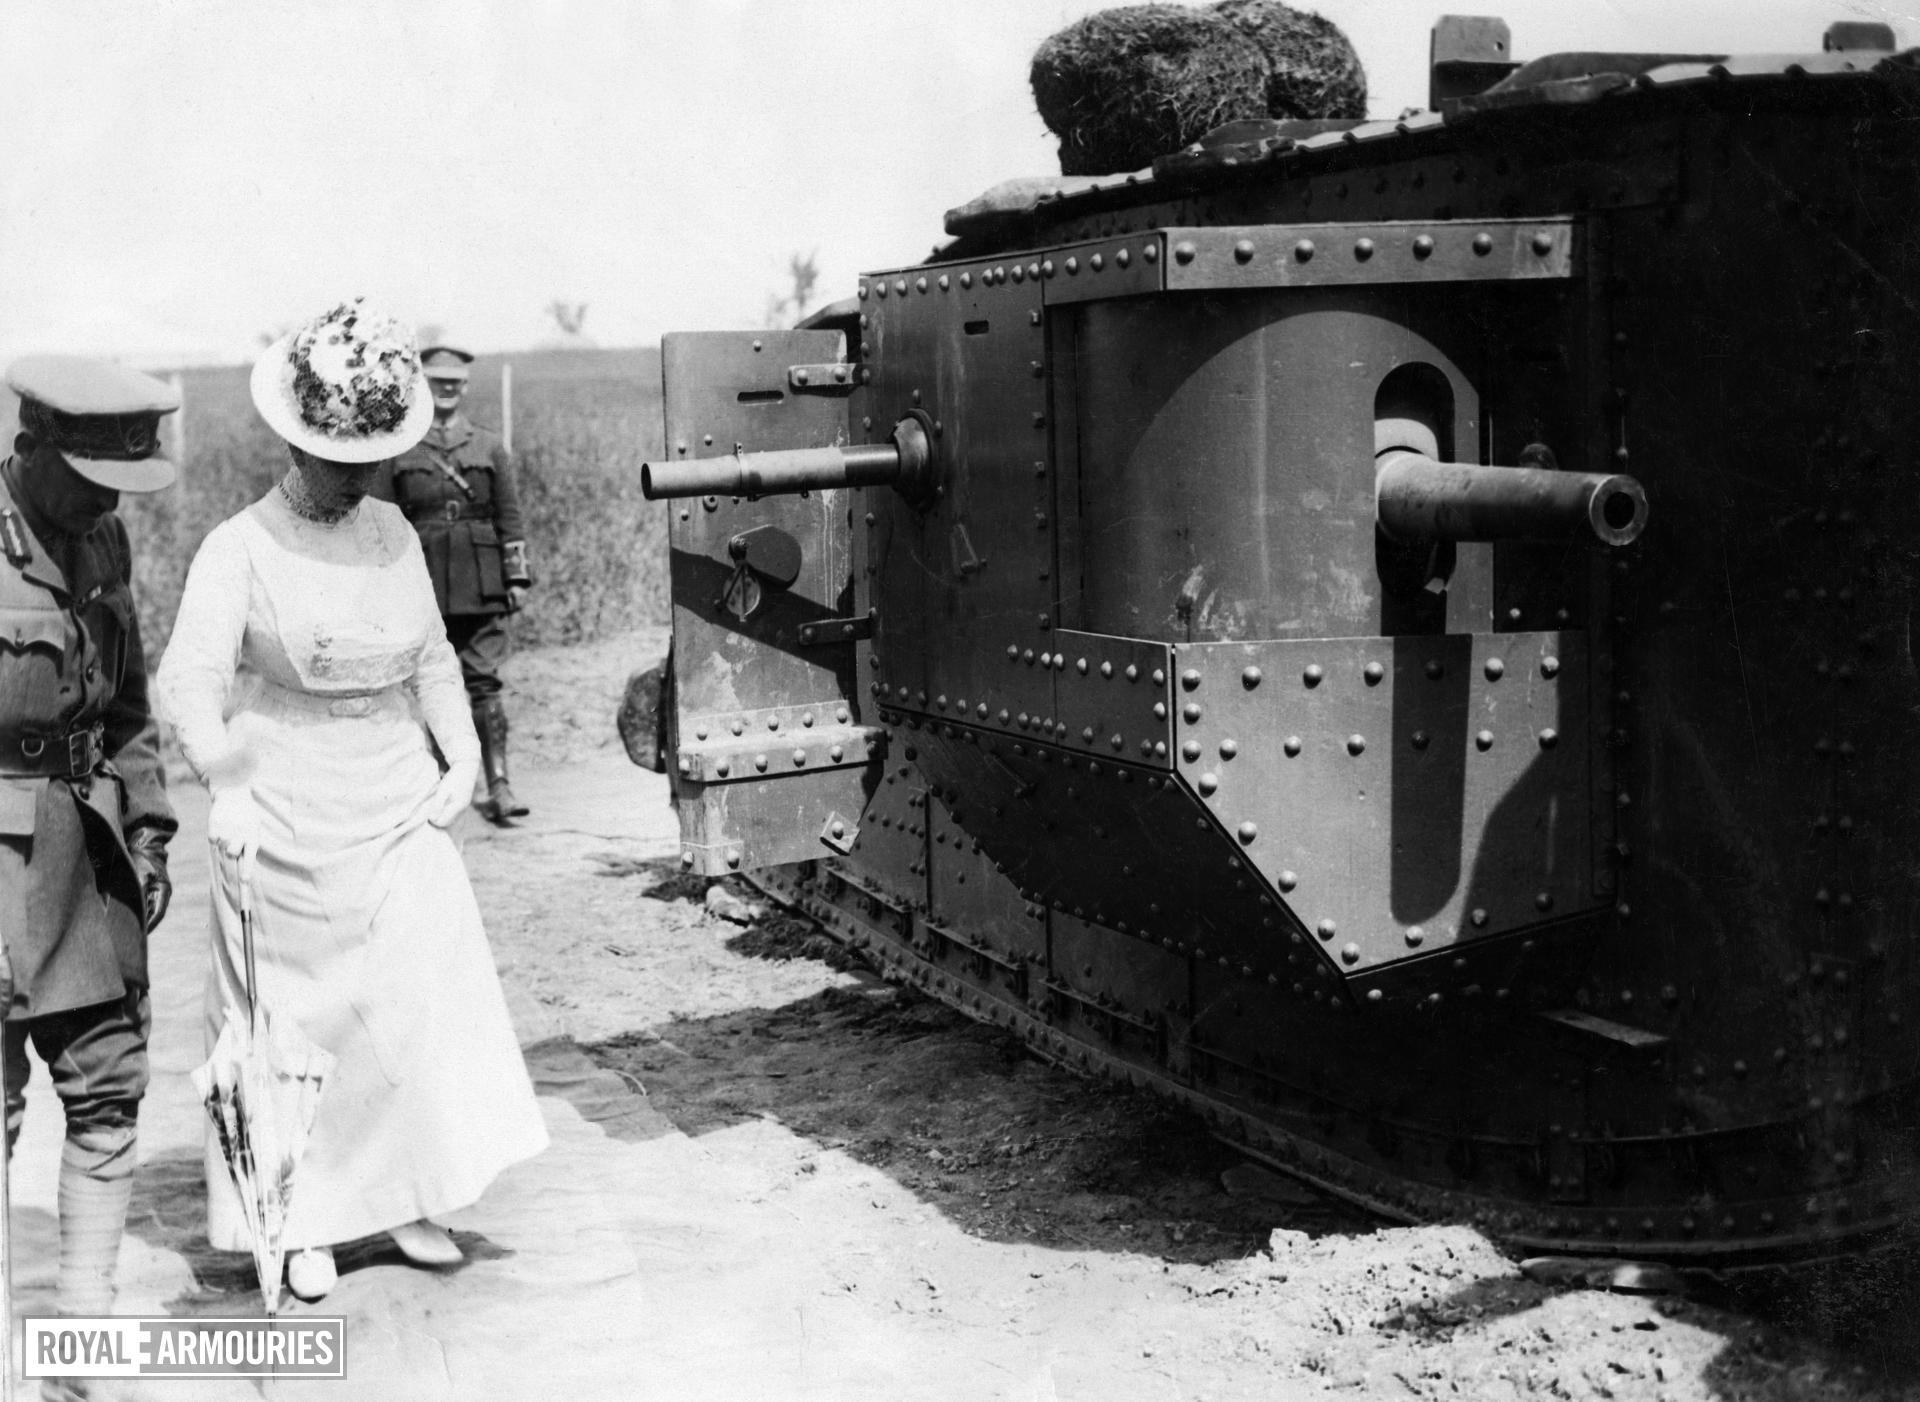 Official photograph taken on the British Western Front showing 'Her Majesty with the Tanks. Great interest was shown by their Majesties in the Tankdrome on the occassion of the Royal Visit to the British front in the Summer of this year,' taken from a collection of First World War photographs, early 20th century